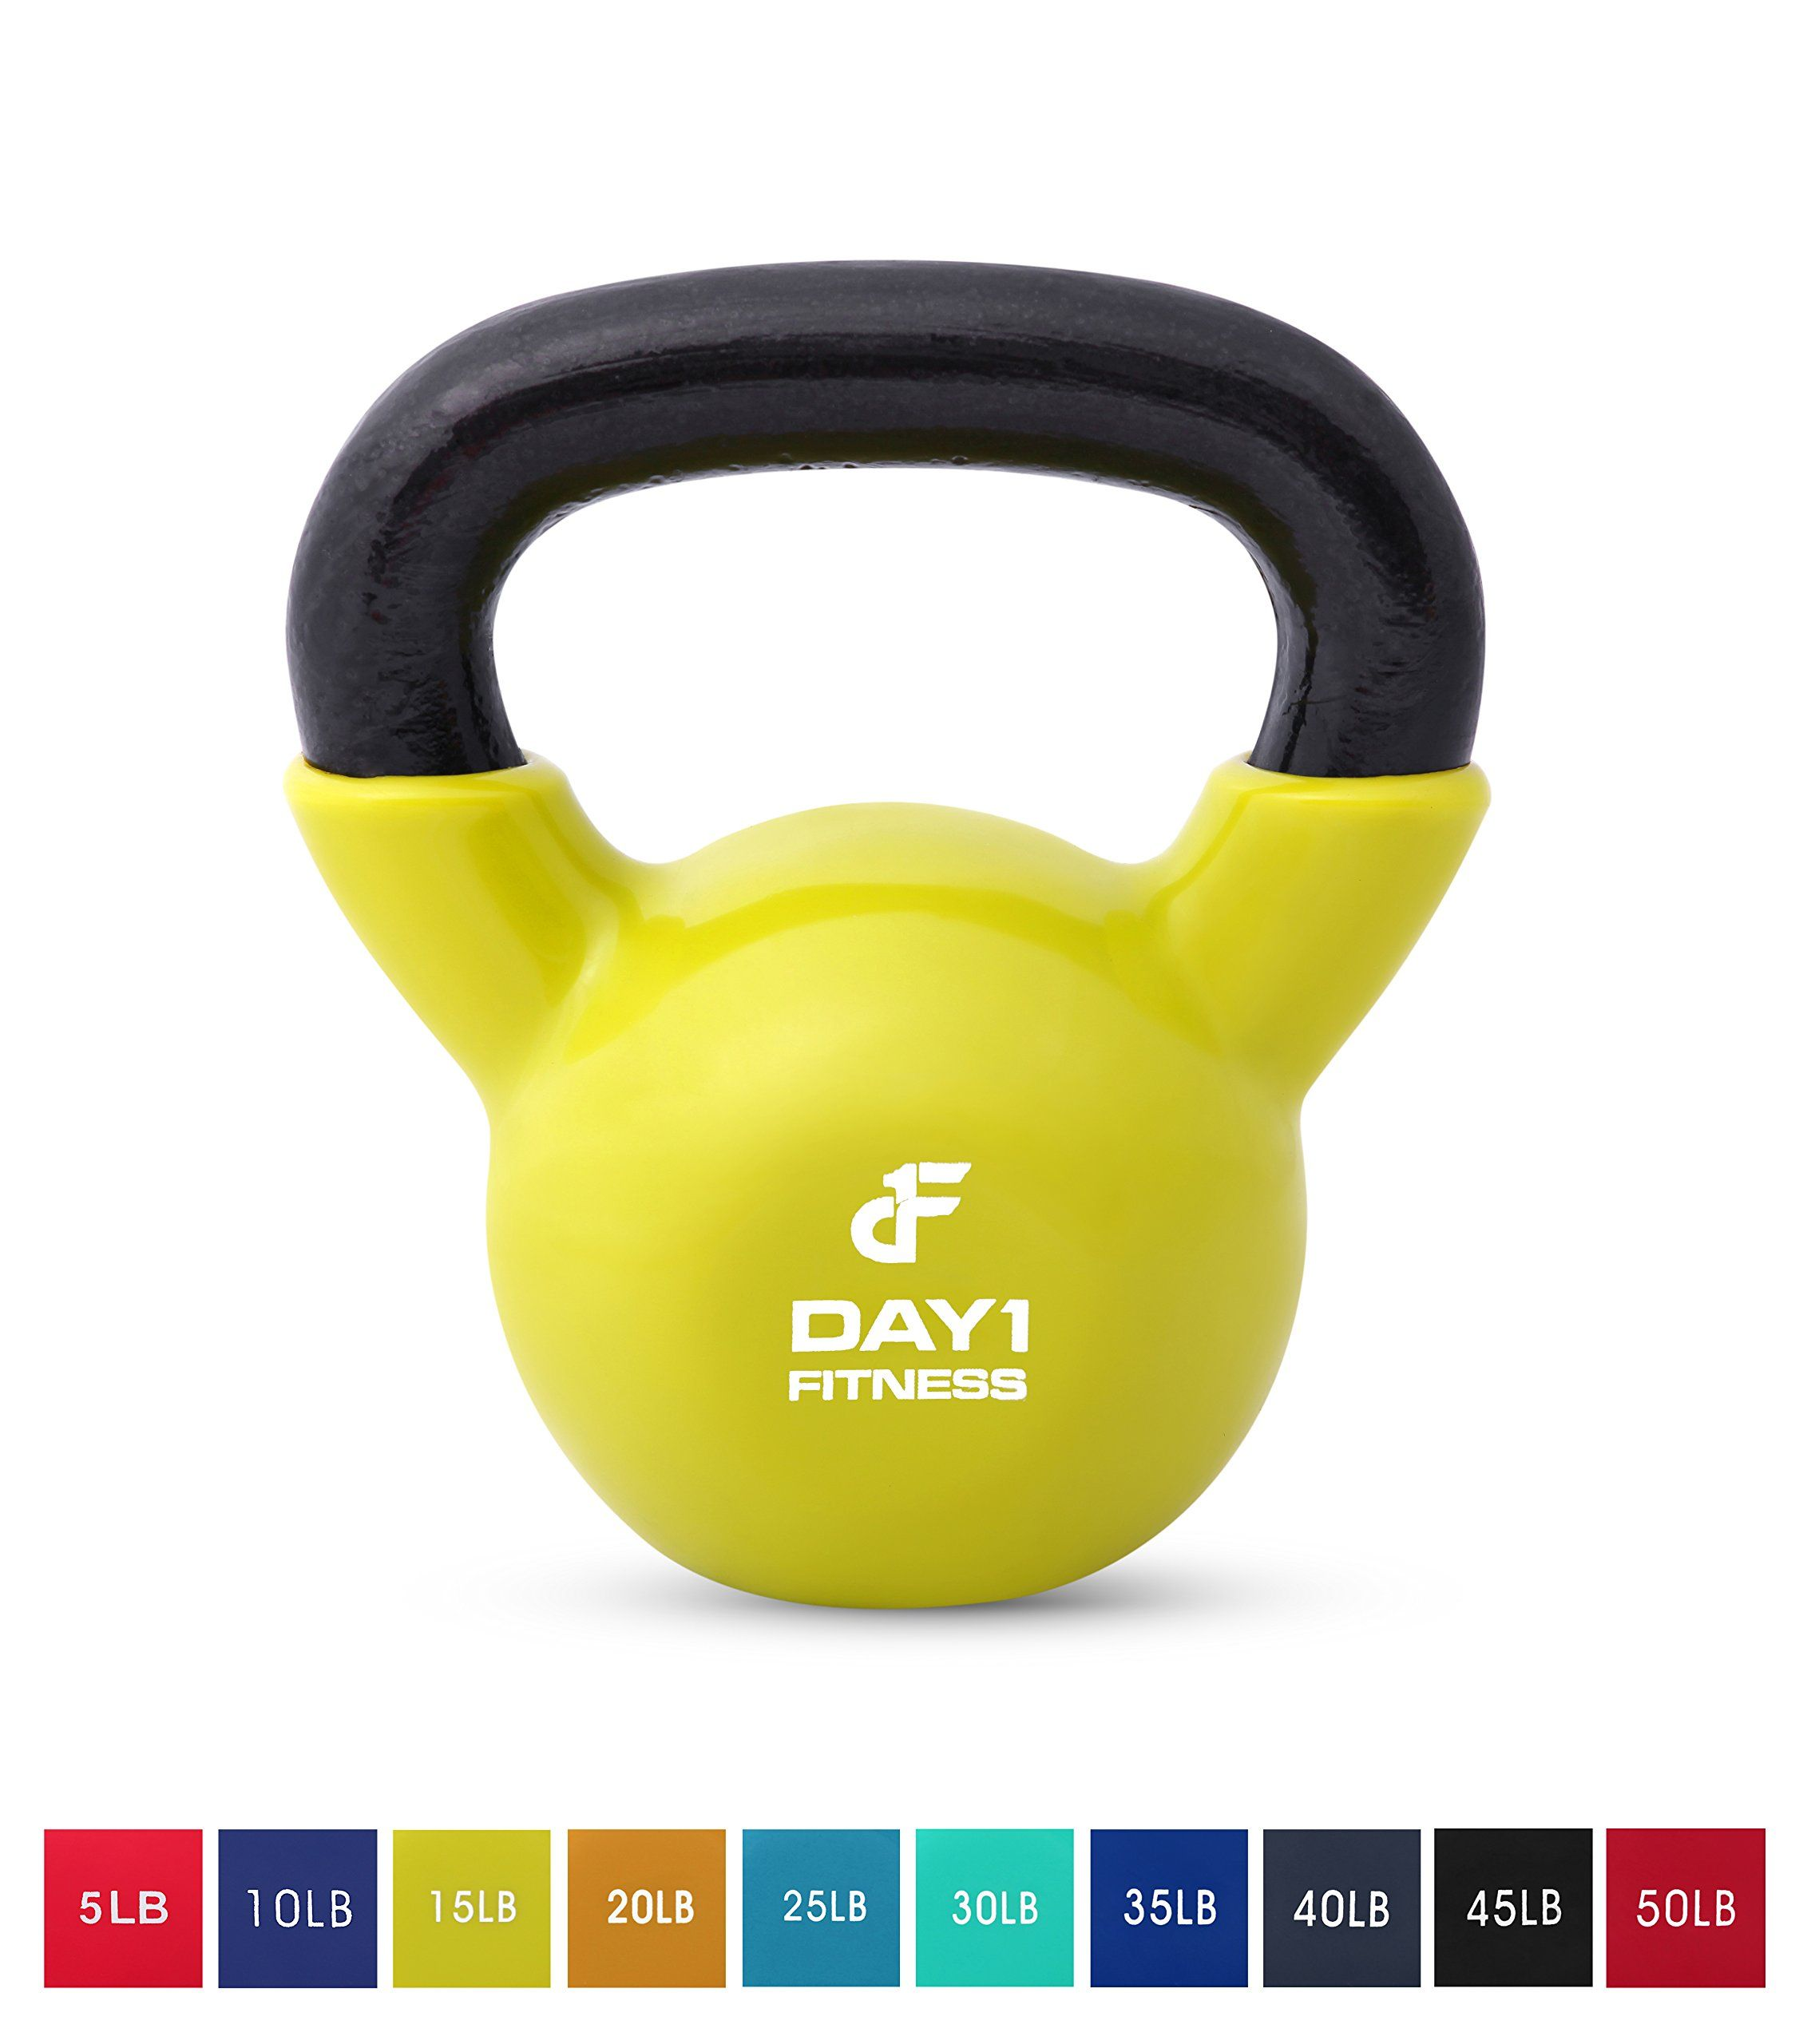 Day 1 fitness kettlebell weights iron kettlebells with